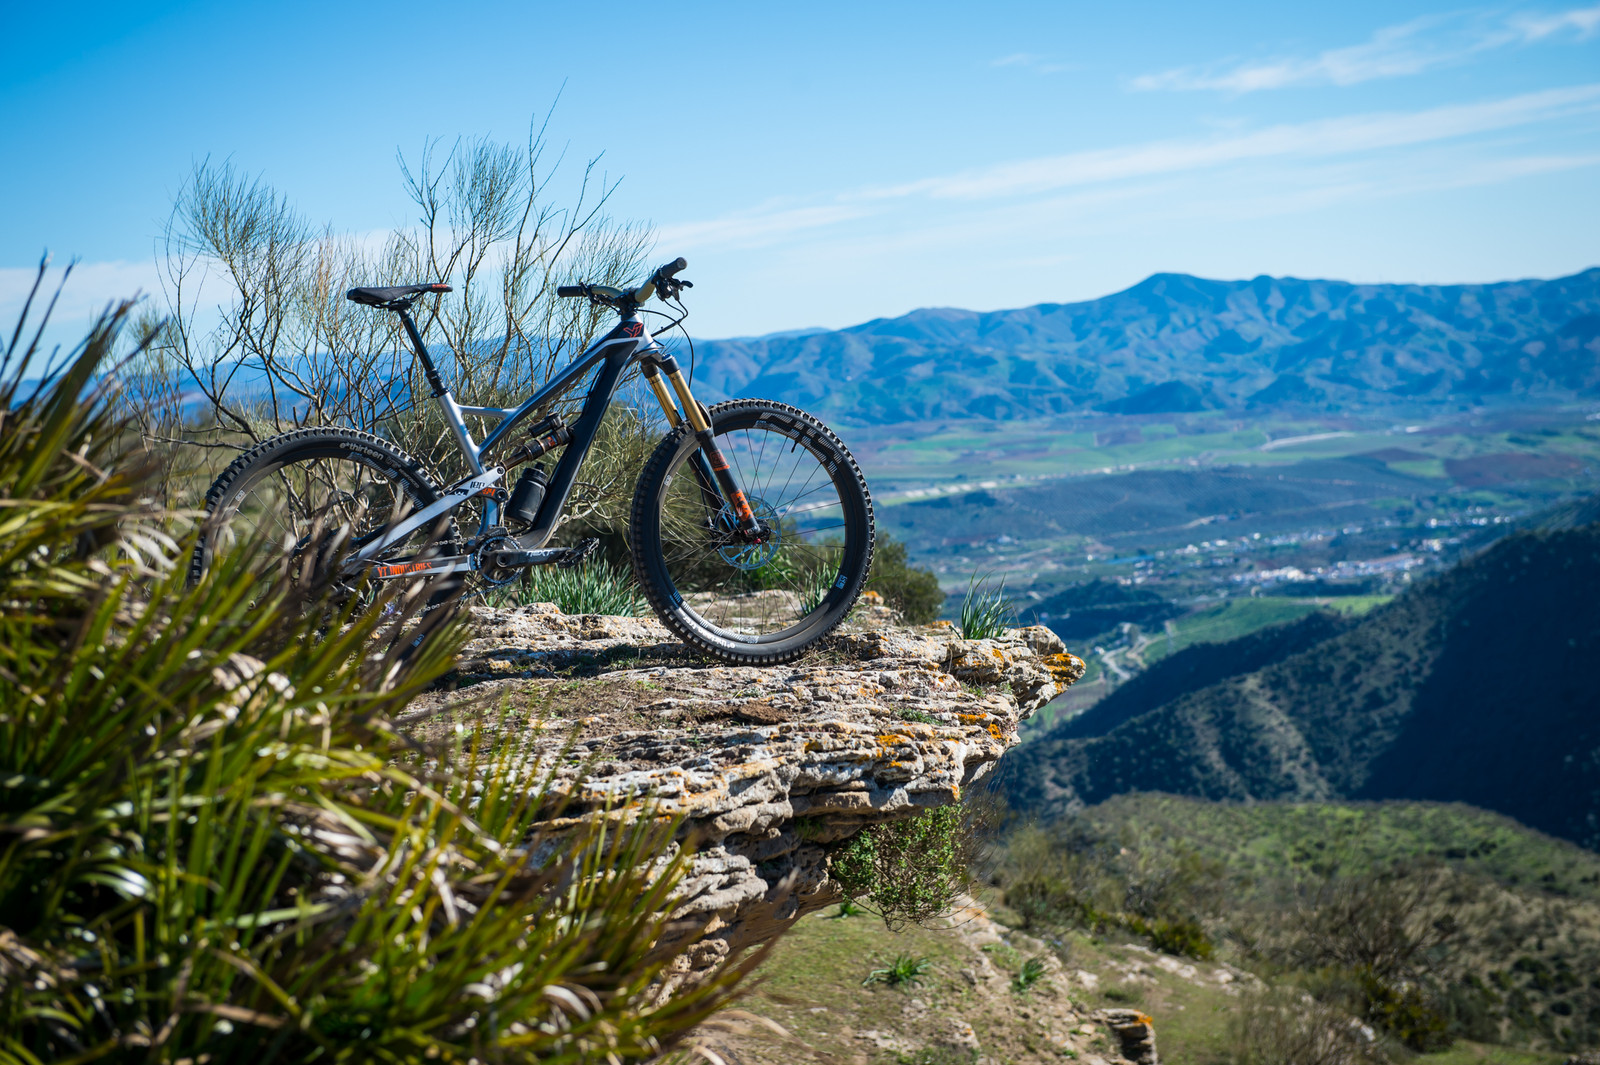 Southern Spain. What a place to ride bikes!